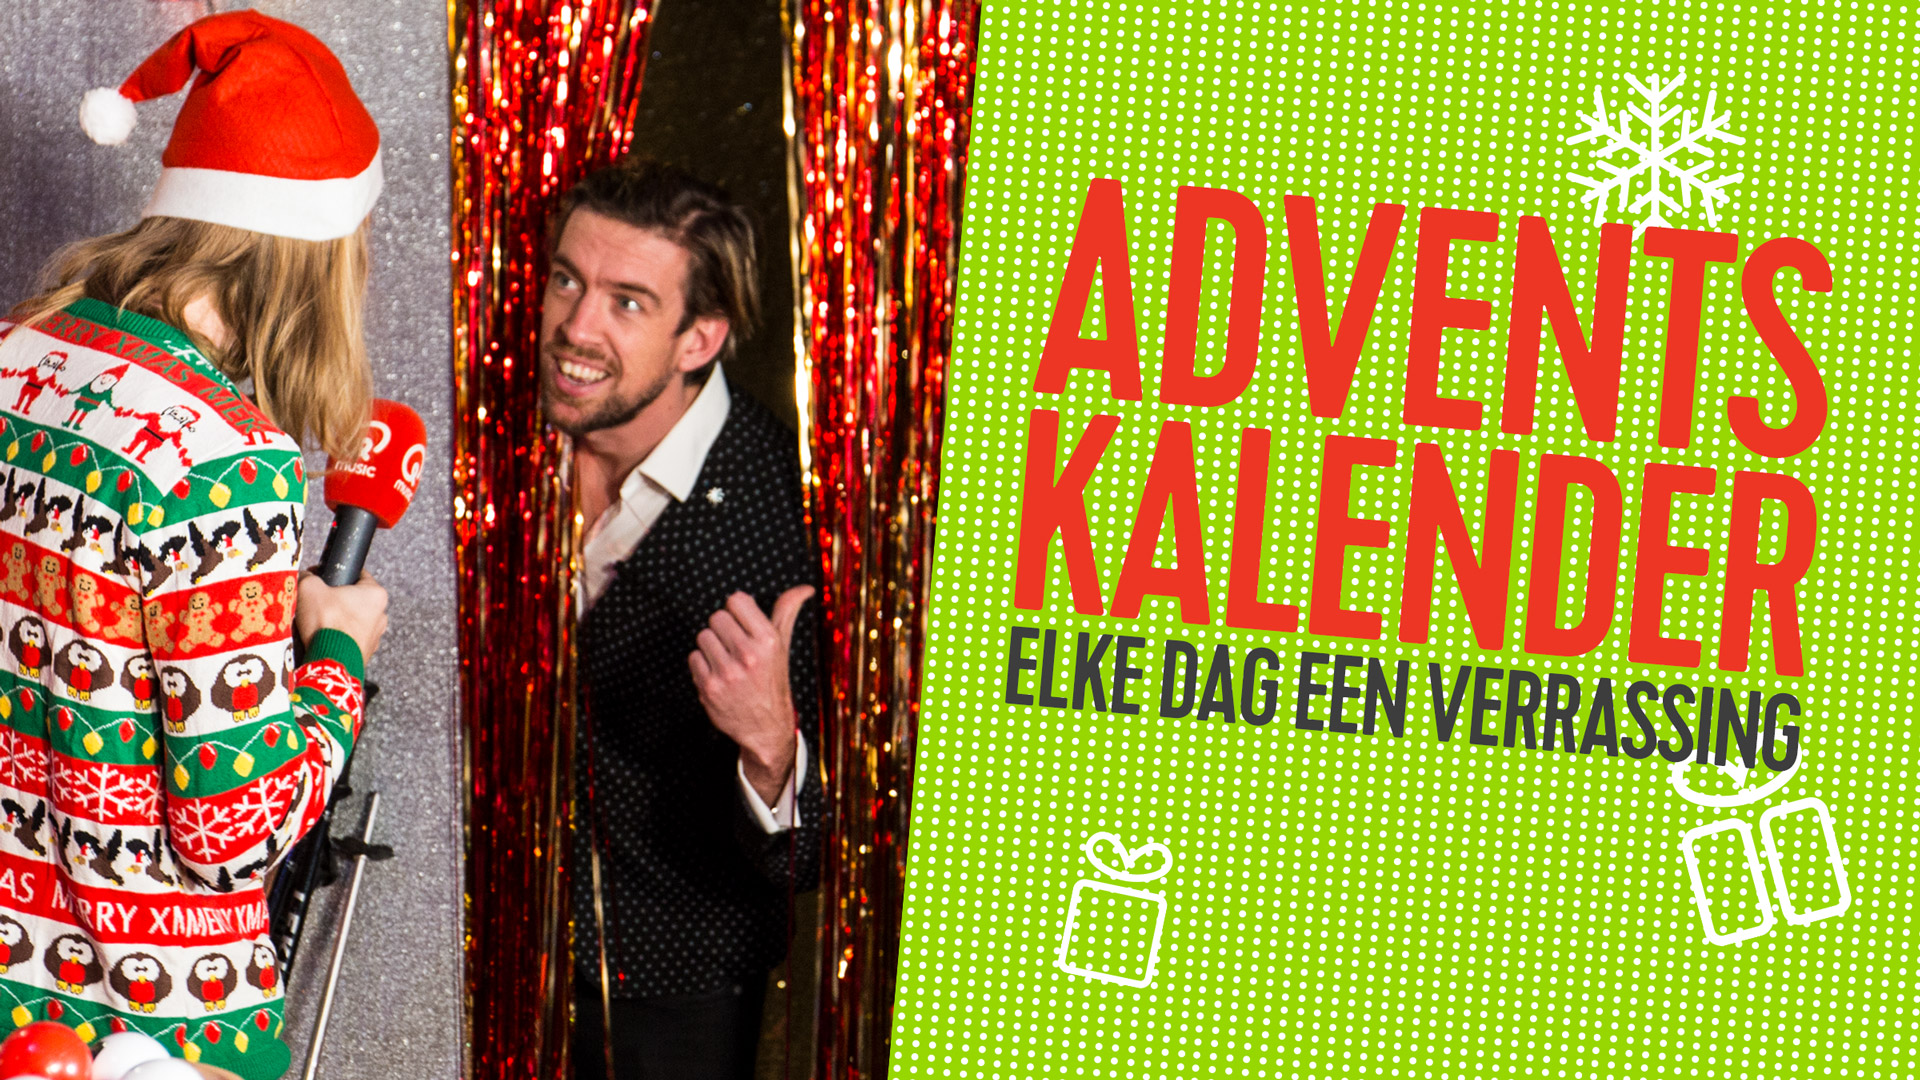 Qmusic teaser adventkalender